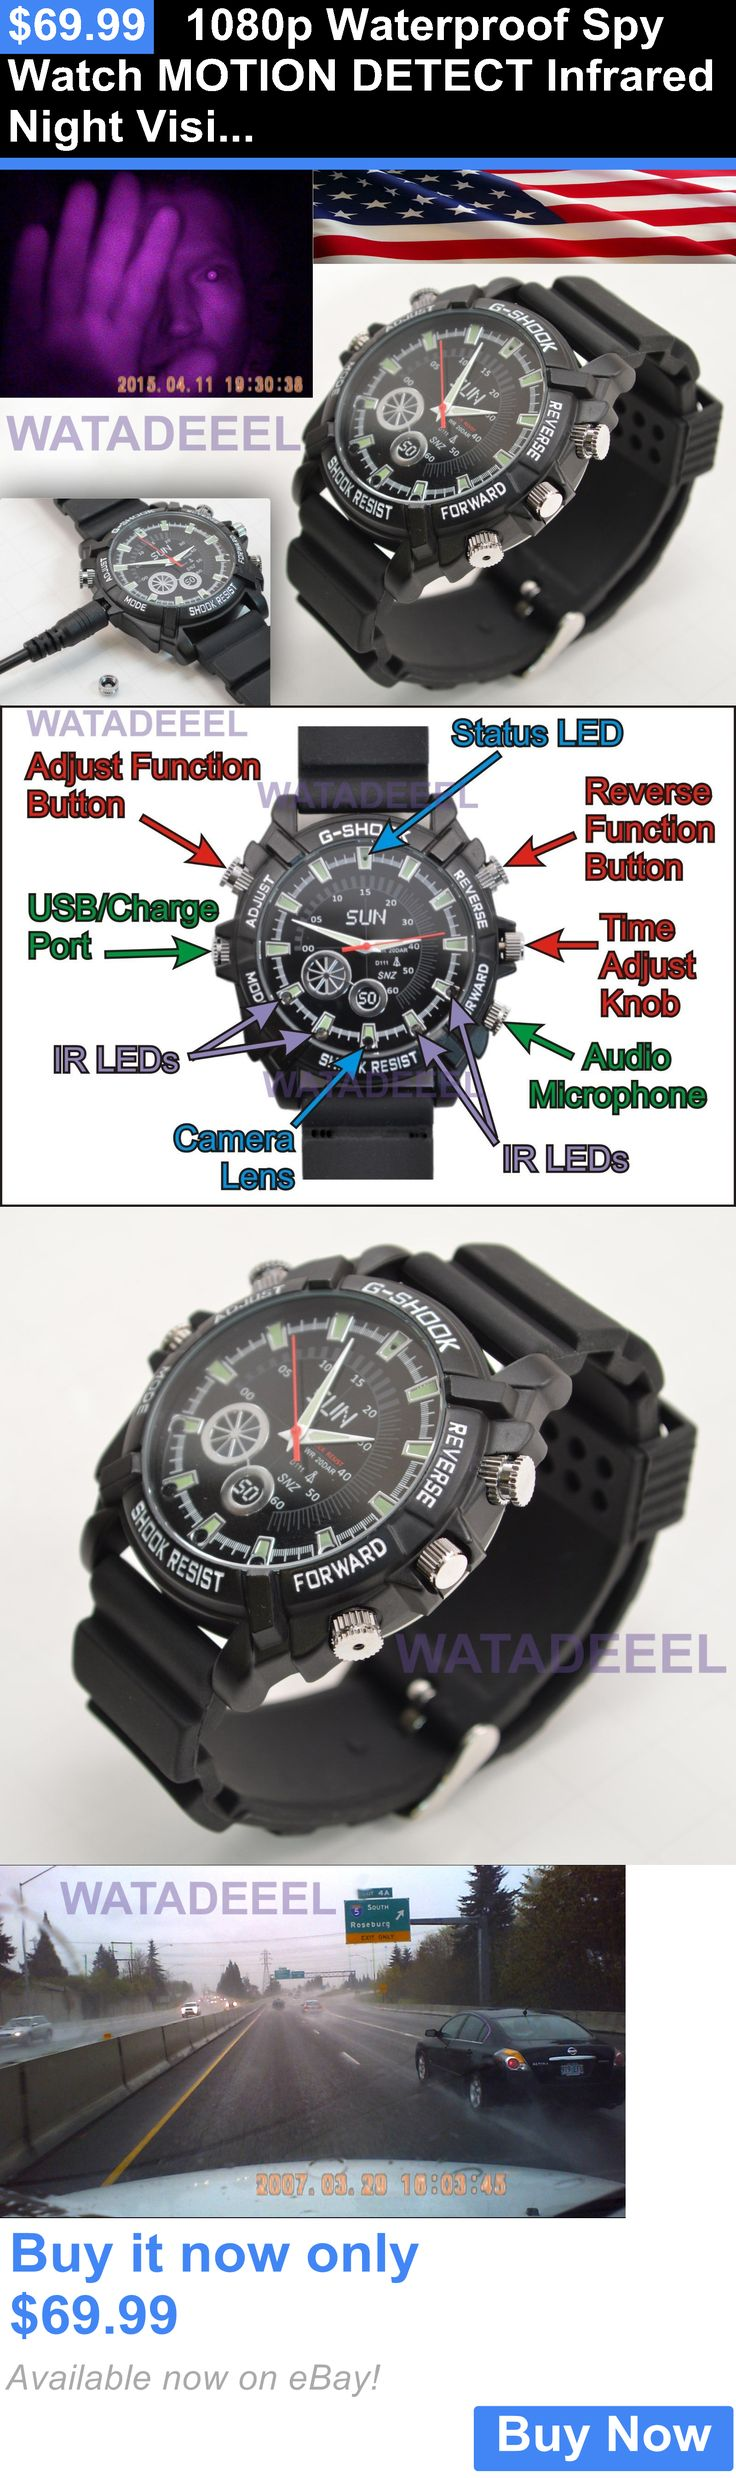 Other Home Surveillance: 1080P Waterproof Spy Watch Motion Detect Infrared Night Vision Camera Video Ir BUY IT NOW ONLY: $69.99